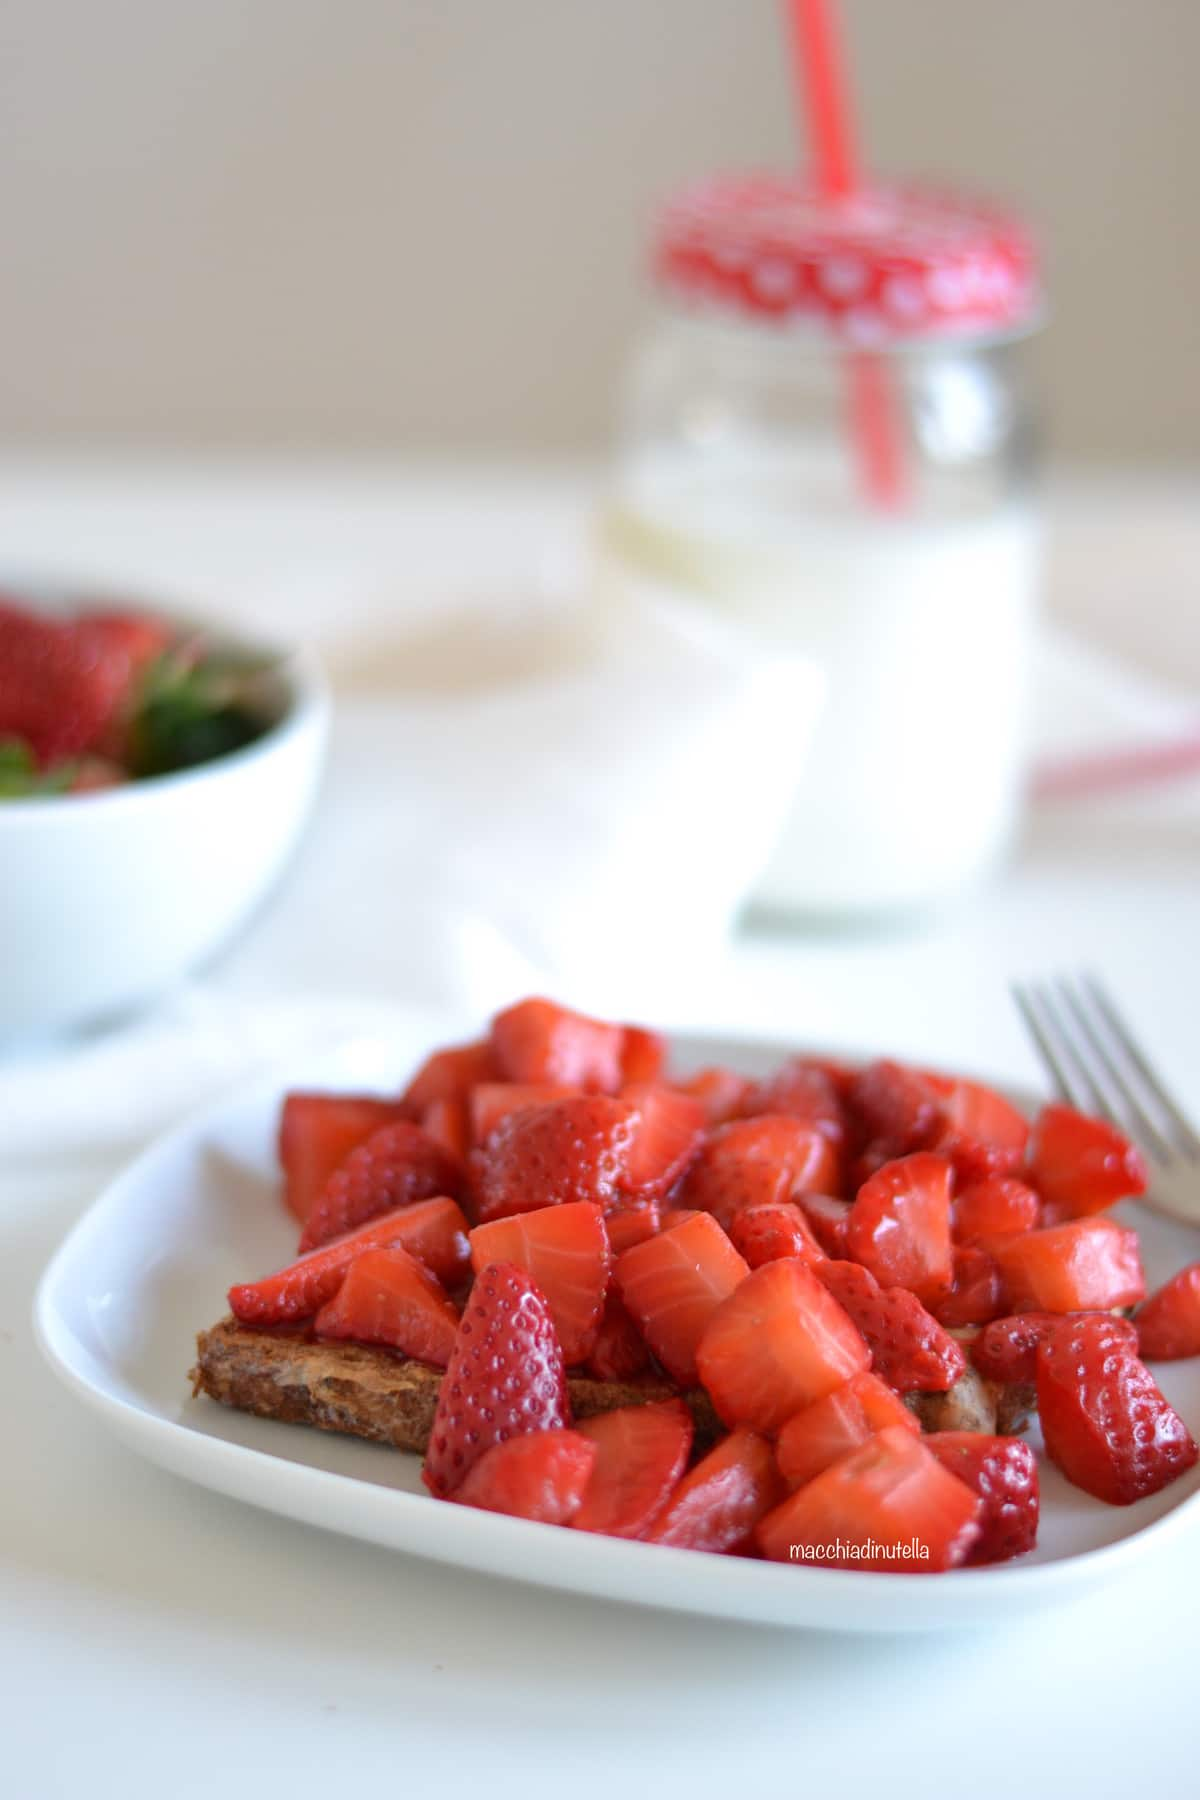 French Toast alle fragole rivisitato by @macchiadinutella